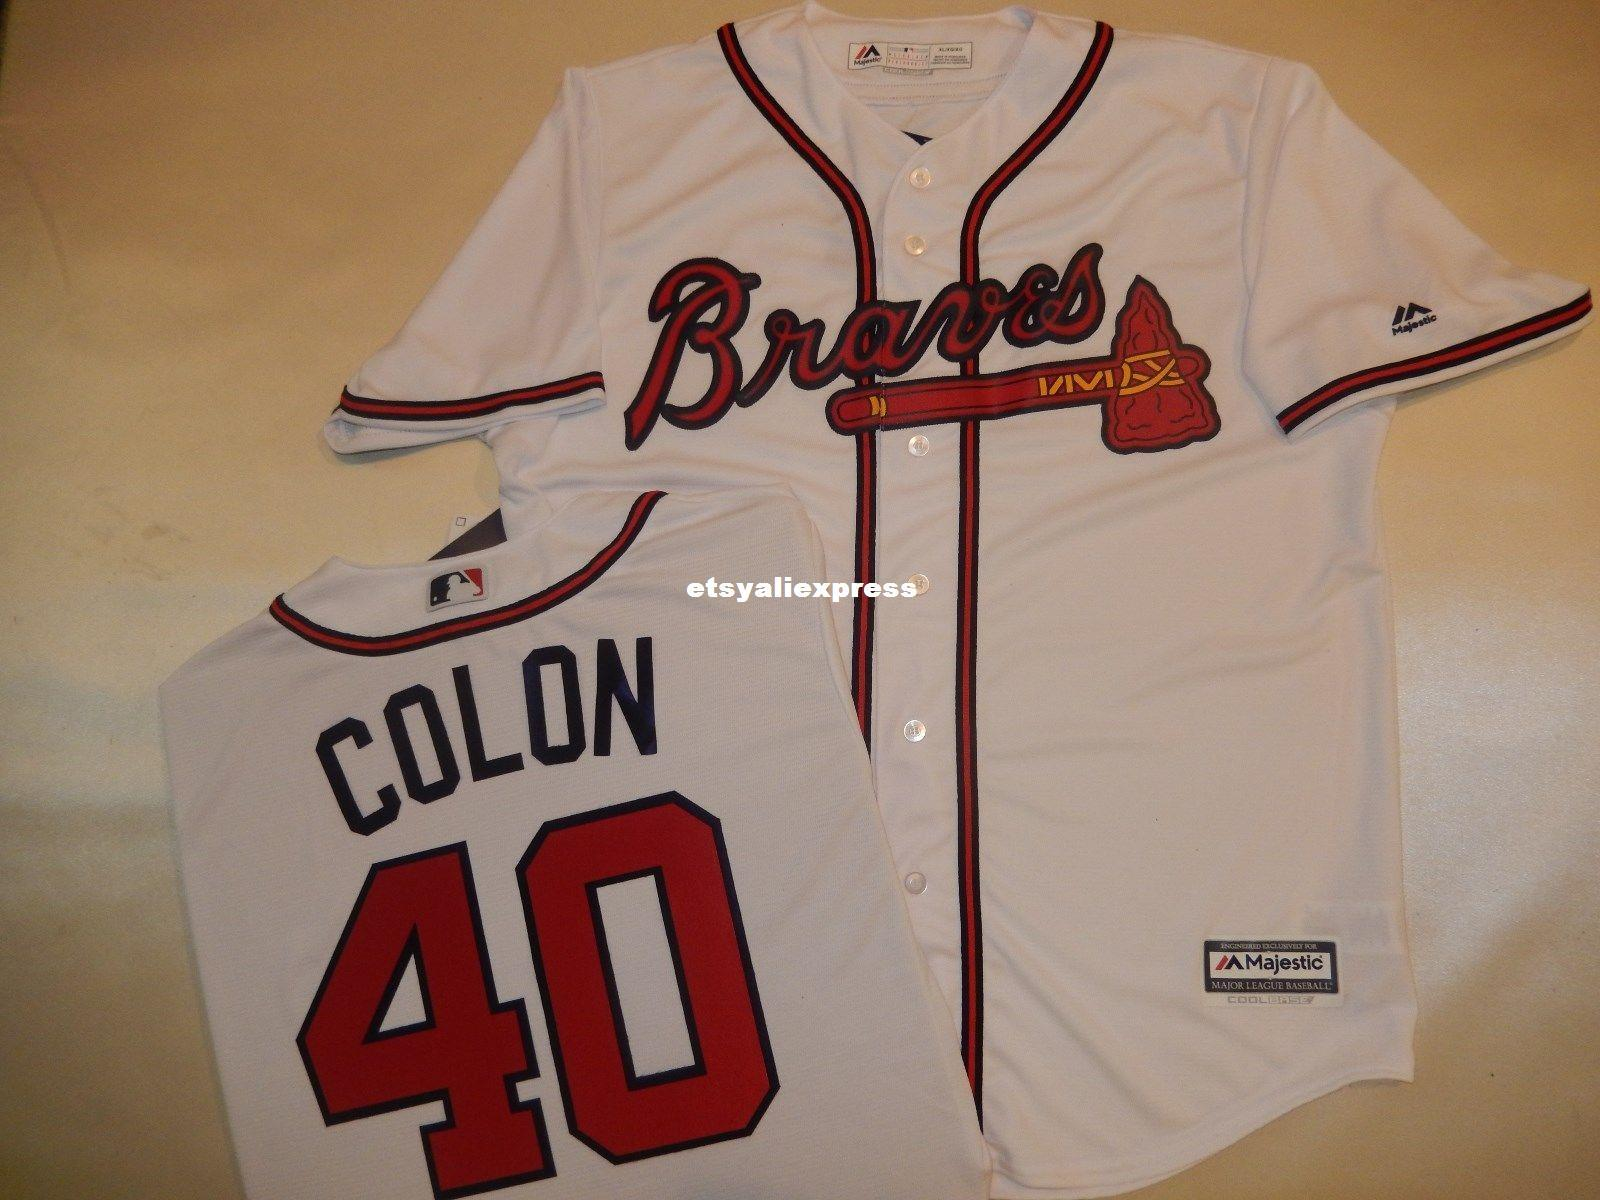 317a049bc Wholesale Cheap MENS MAJESTIC Atlanta #40 BARTOLO COLON Baseball ...